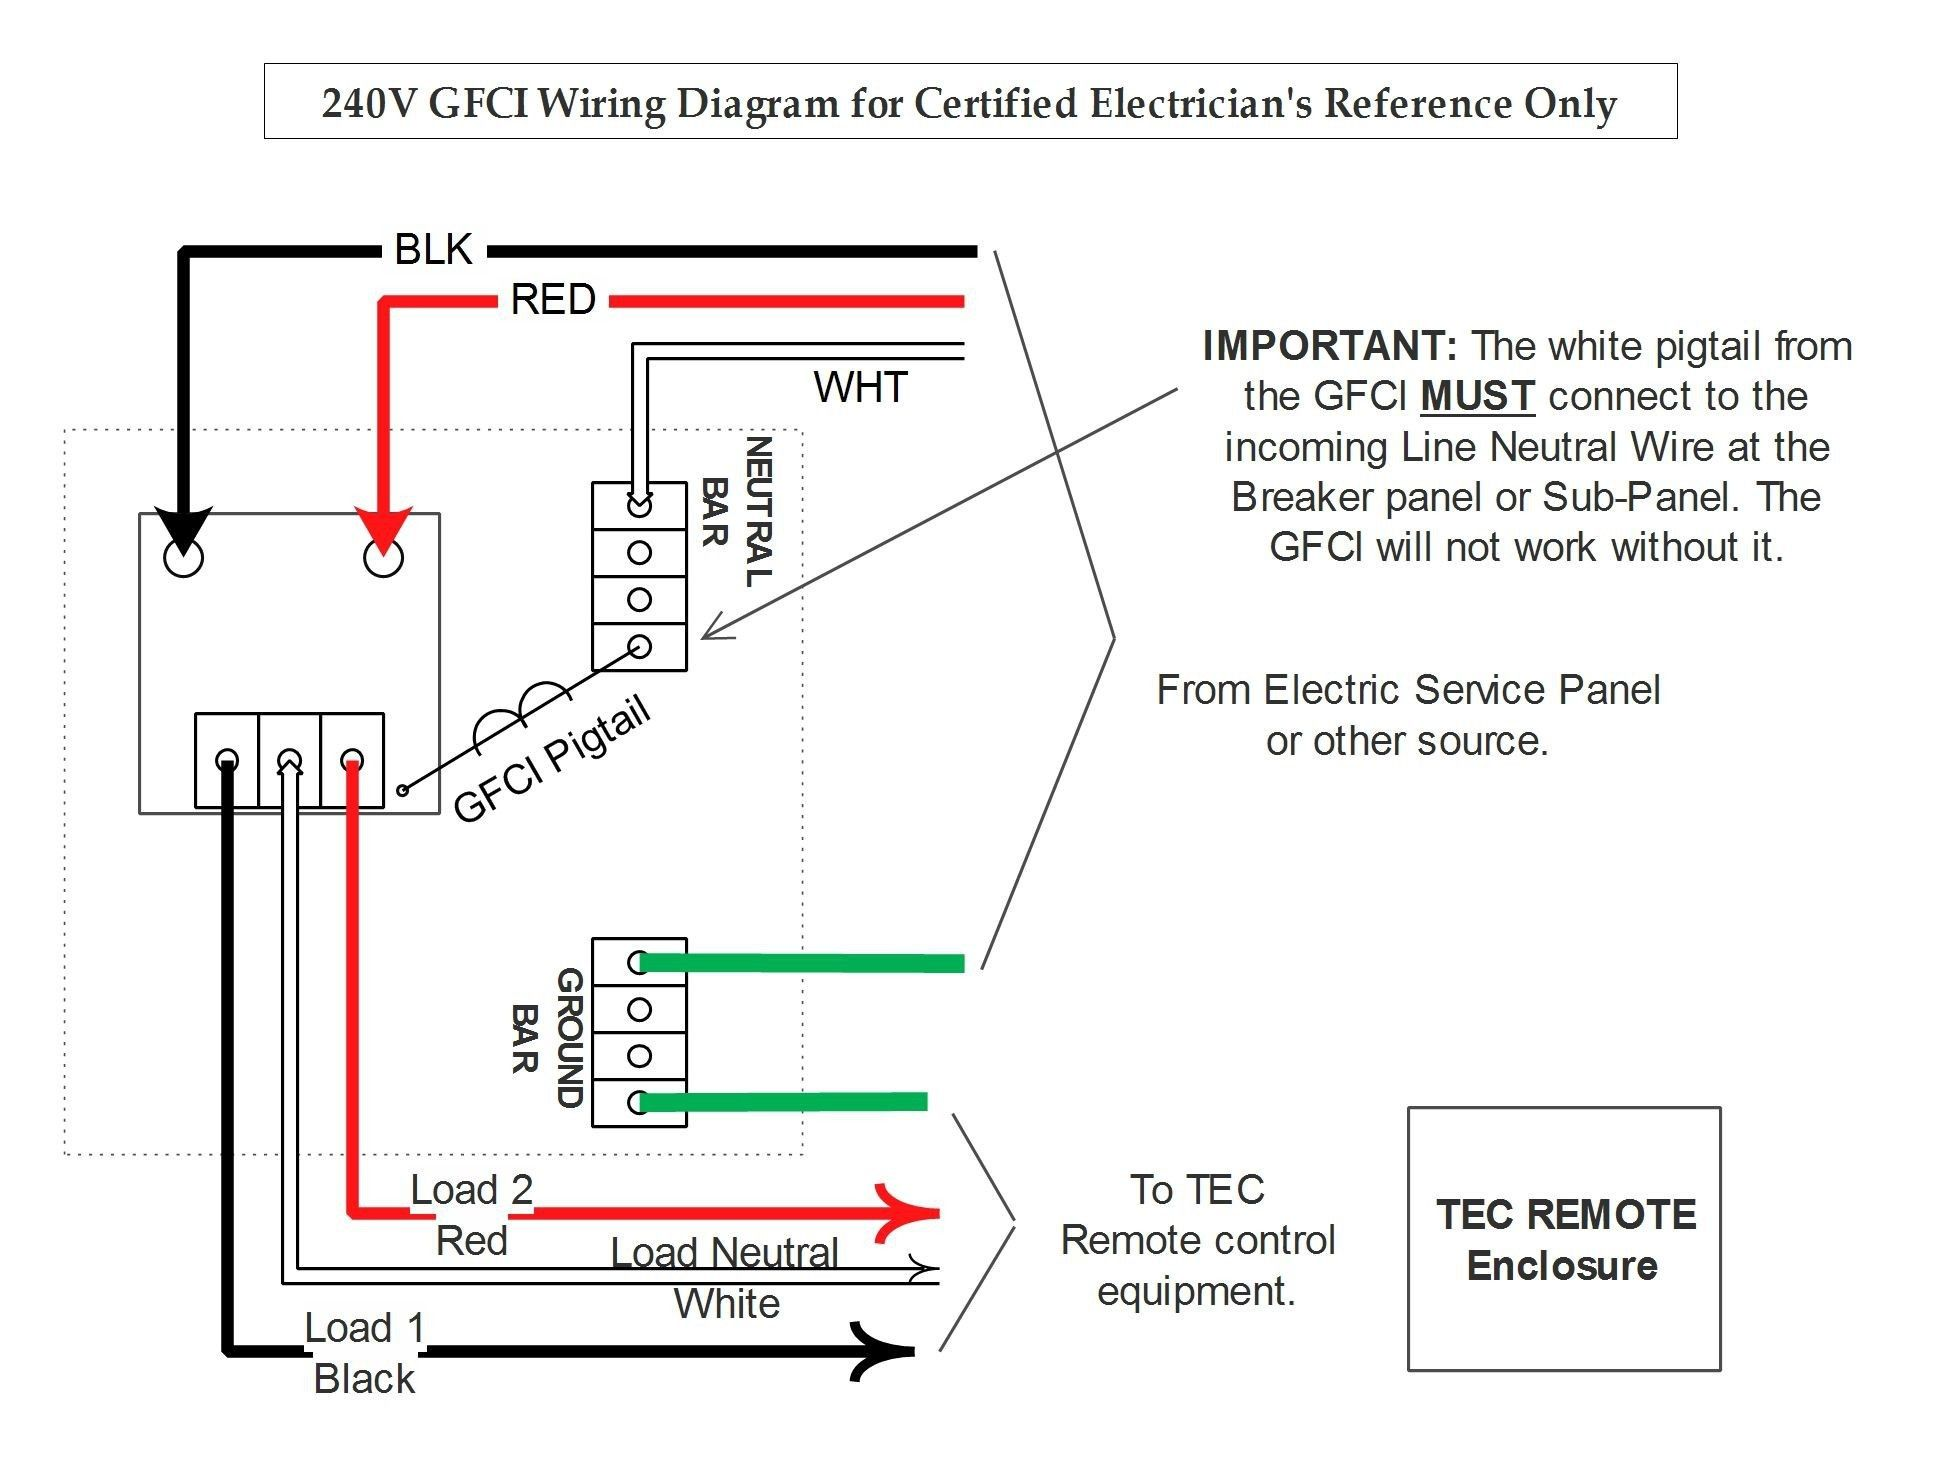 New Gfci Wiring Diagram For Hot Tub Diagram Diagramsample Diagramtemplate Wiringdiagram Diagramchart Workshee Diagram Electrical Wiring Diagram Car Lifts